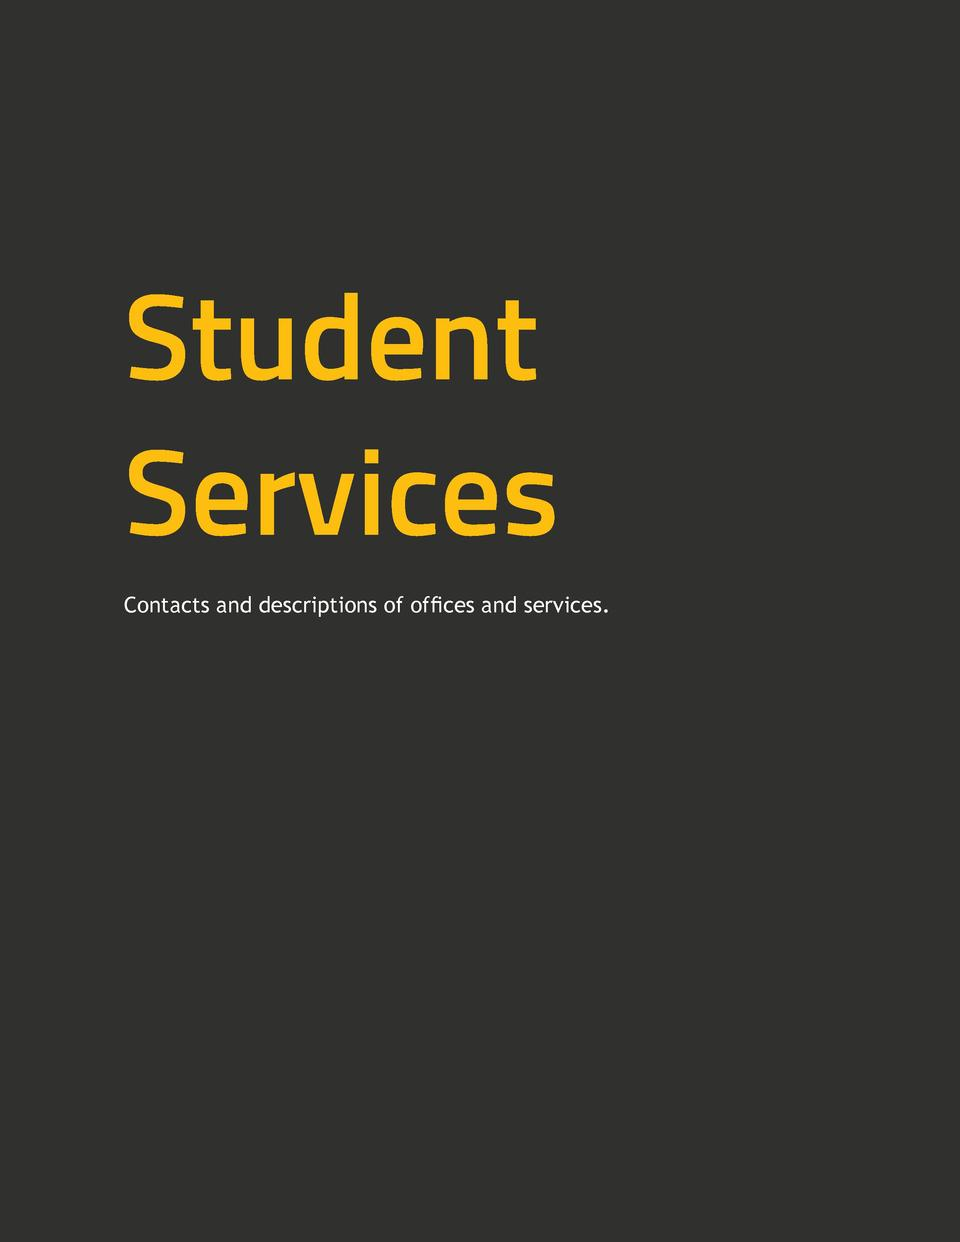 Student Services Contacts and descriptions of offices and services.